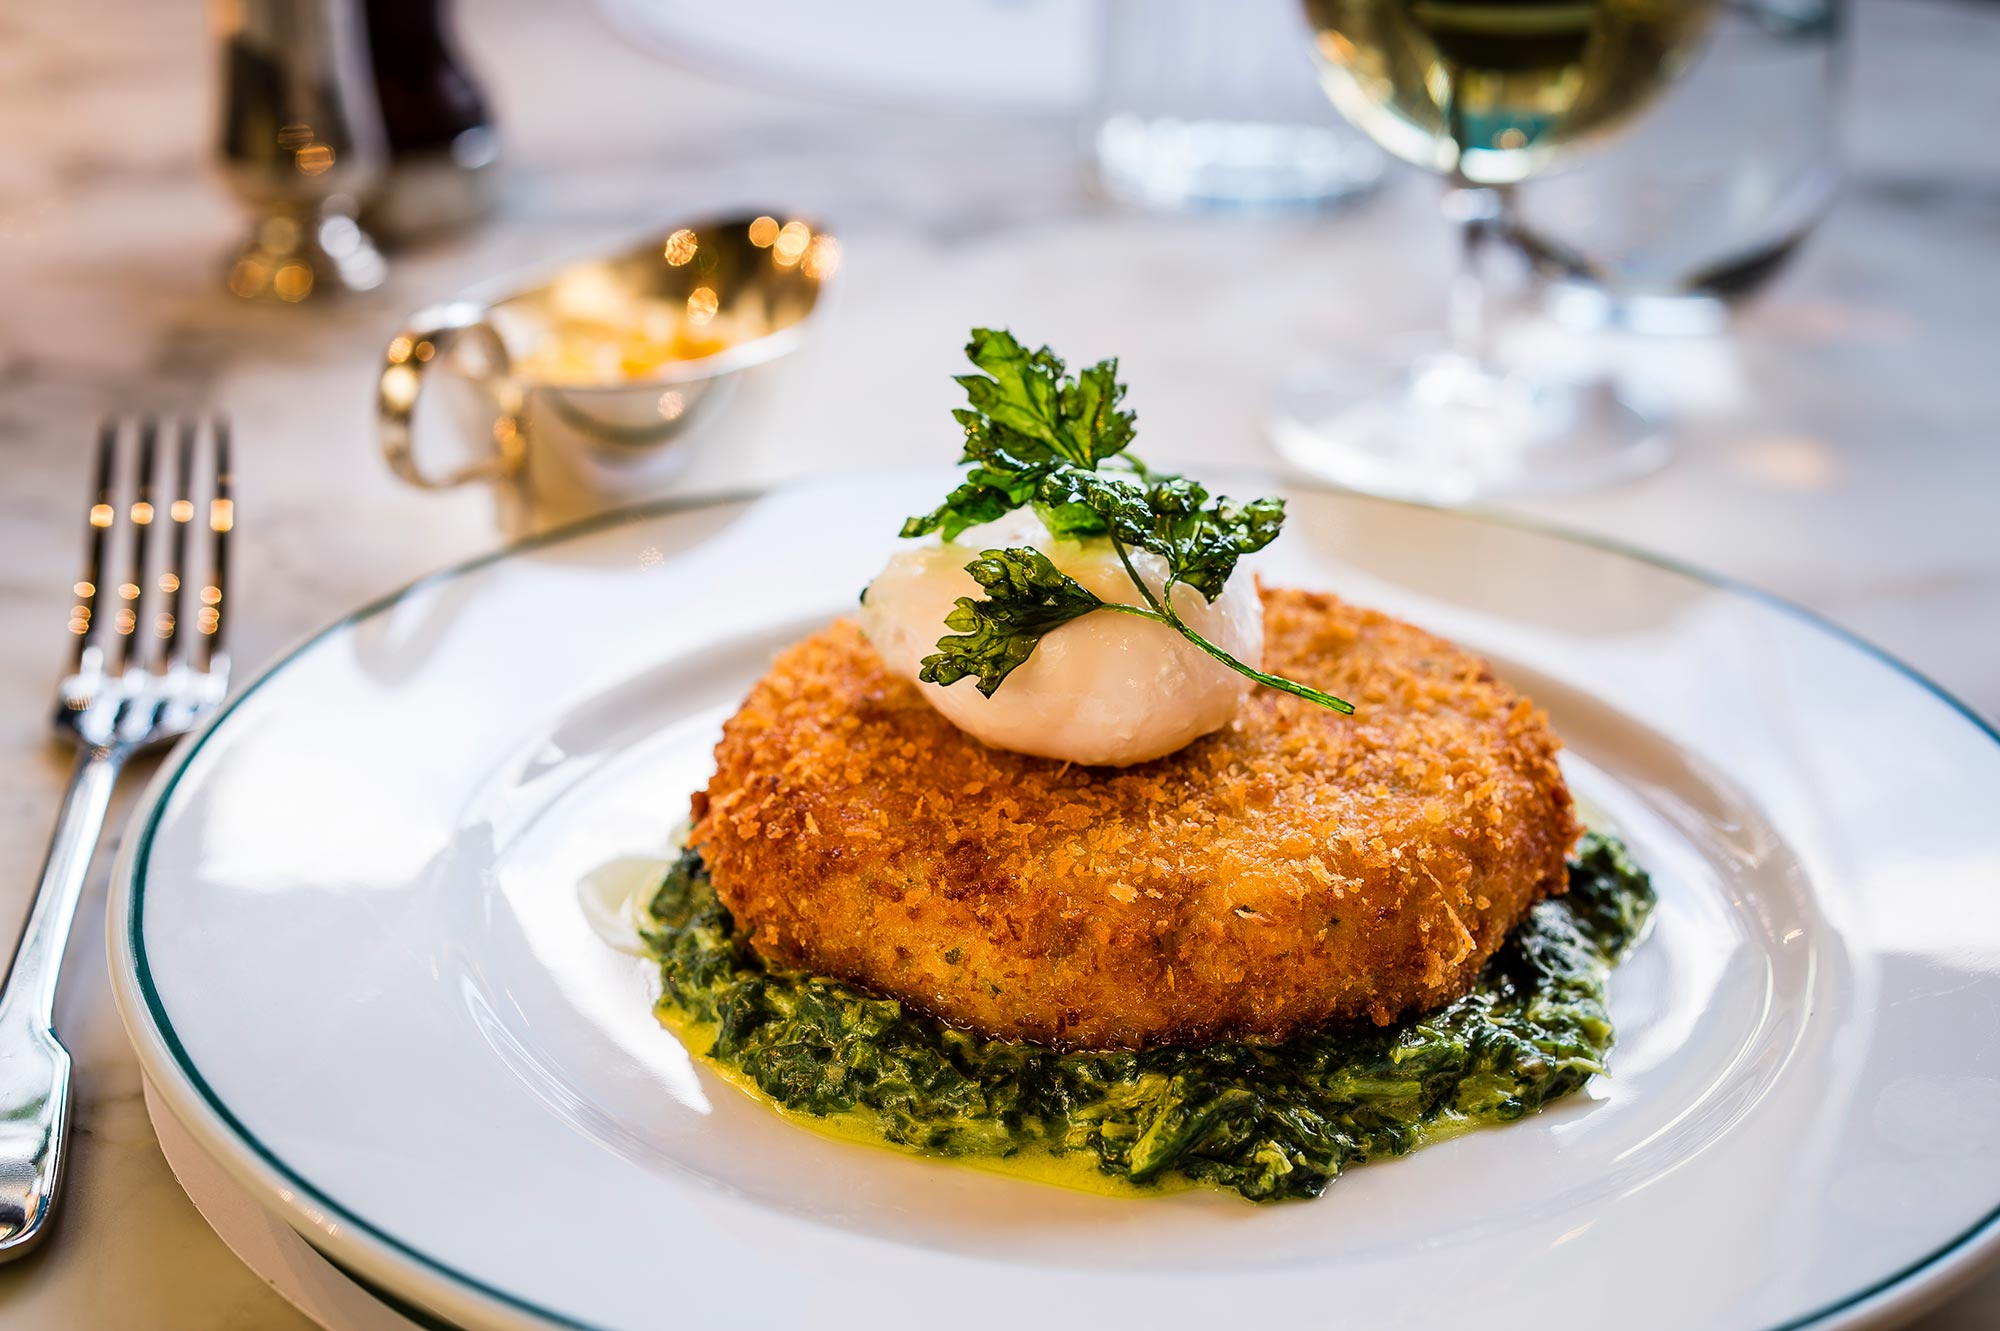 Restaurants in Bath, The Ivy Bath Brasserie - Fish Cake - The Ivy Bath Brasserie